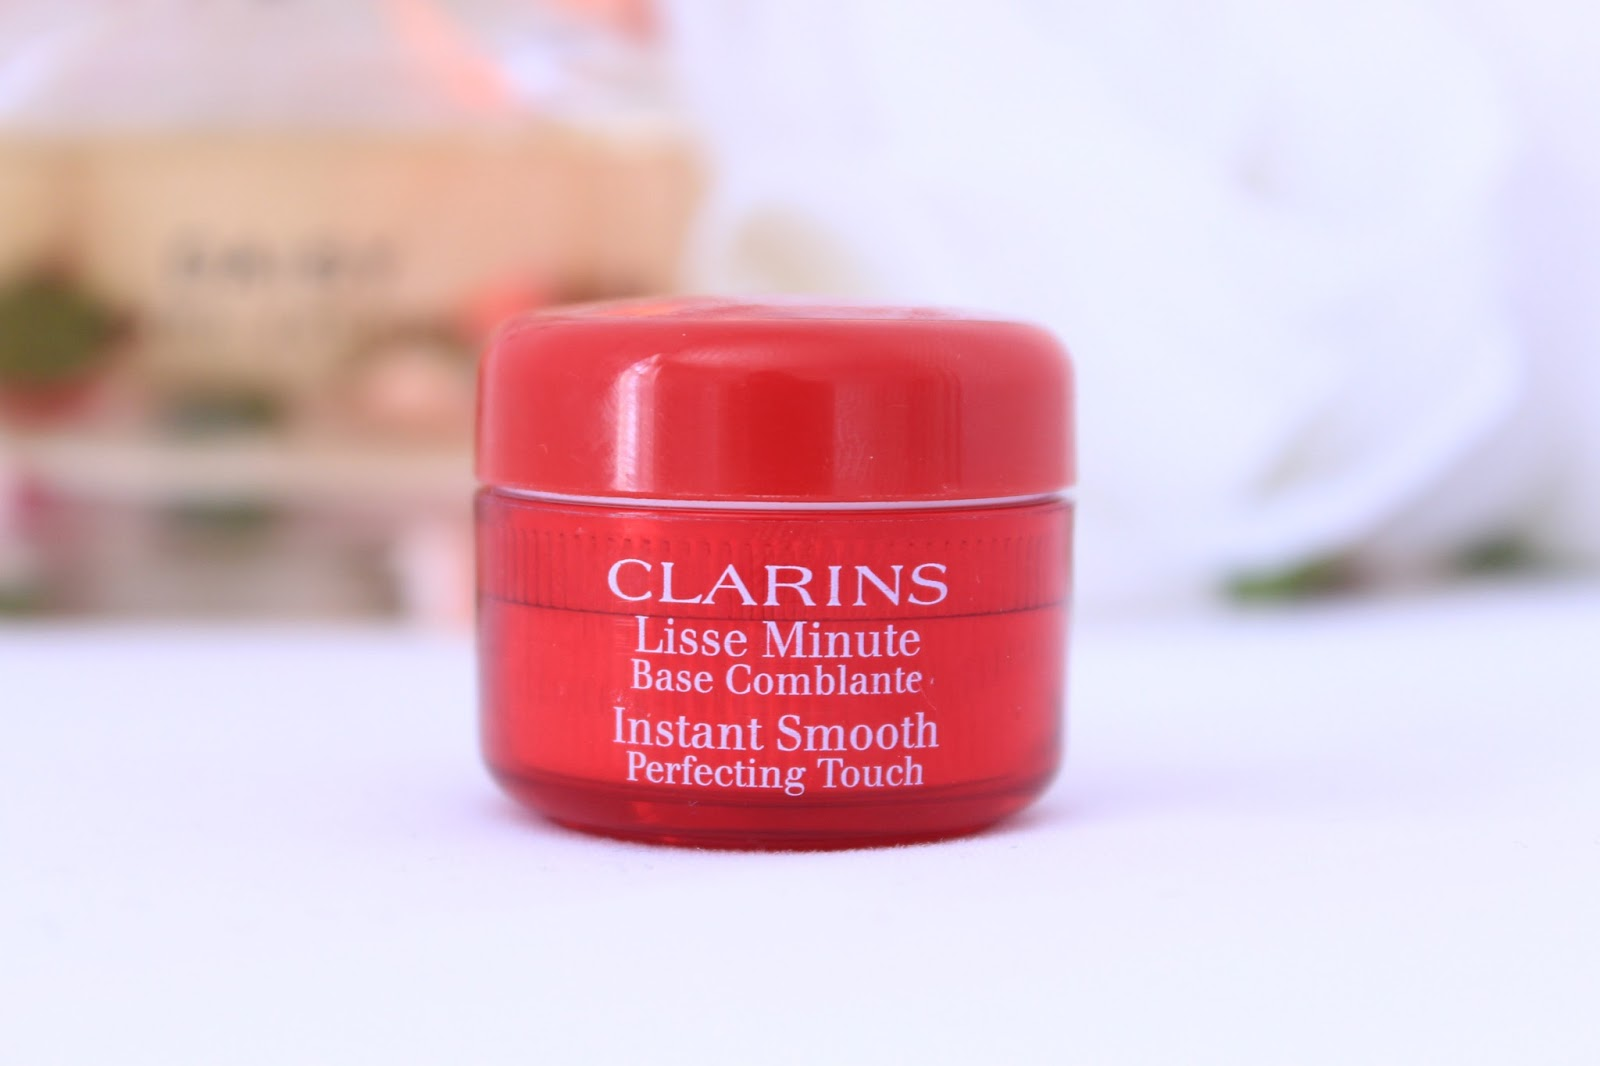 Instant Smooth Perfecting Touch by Clarins #17